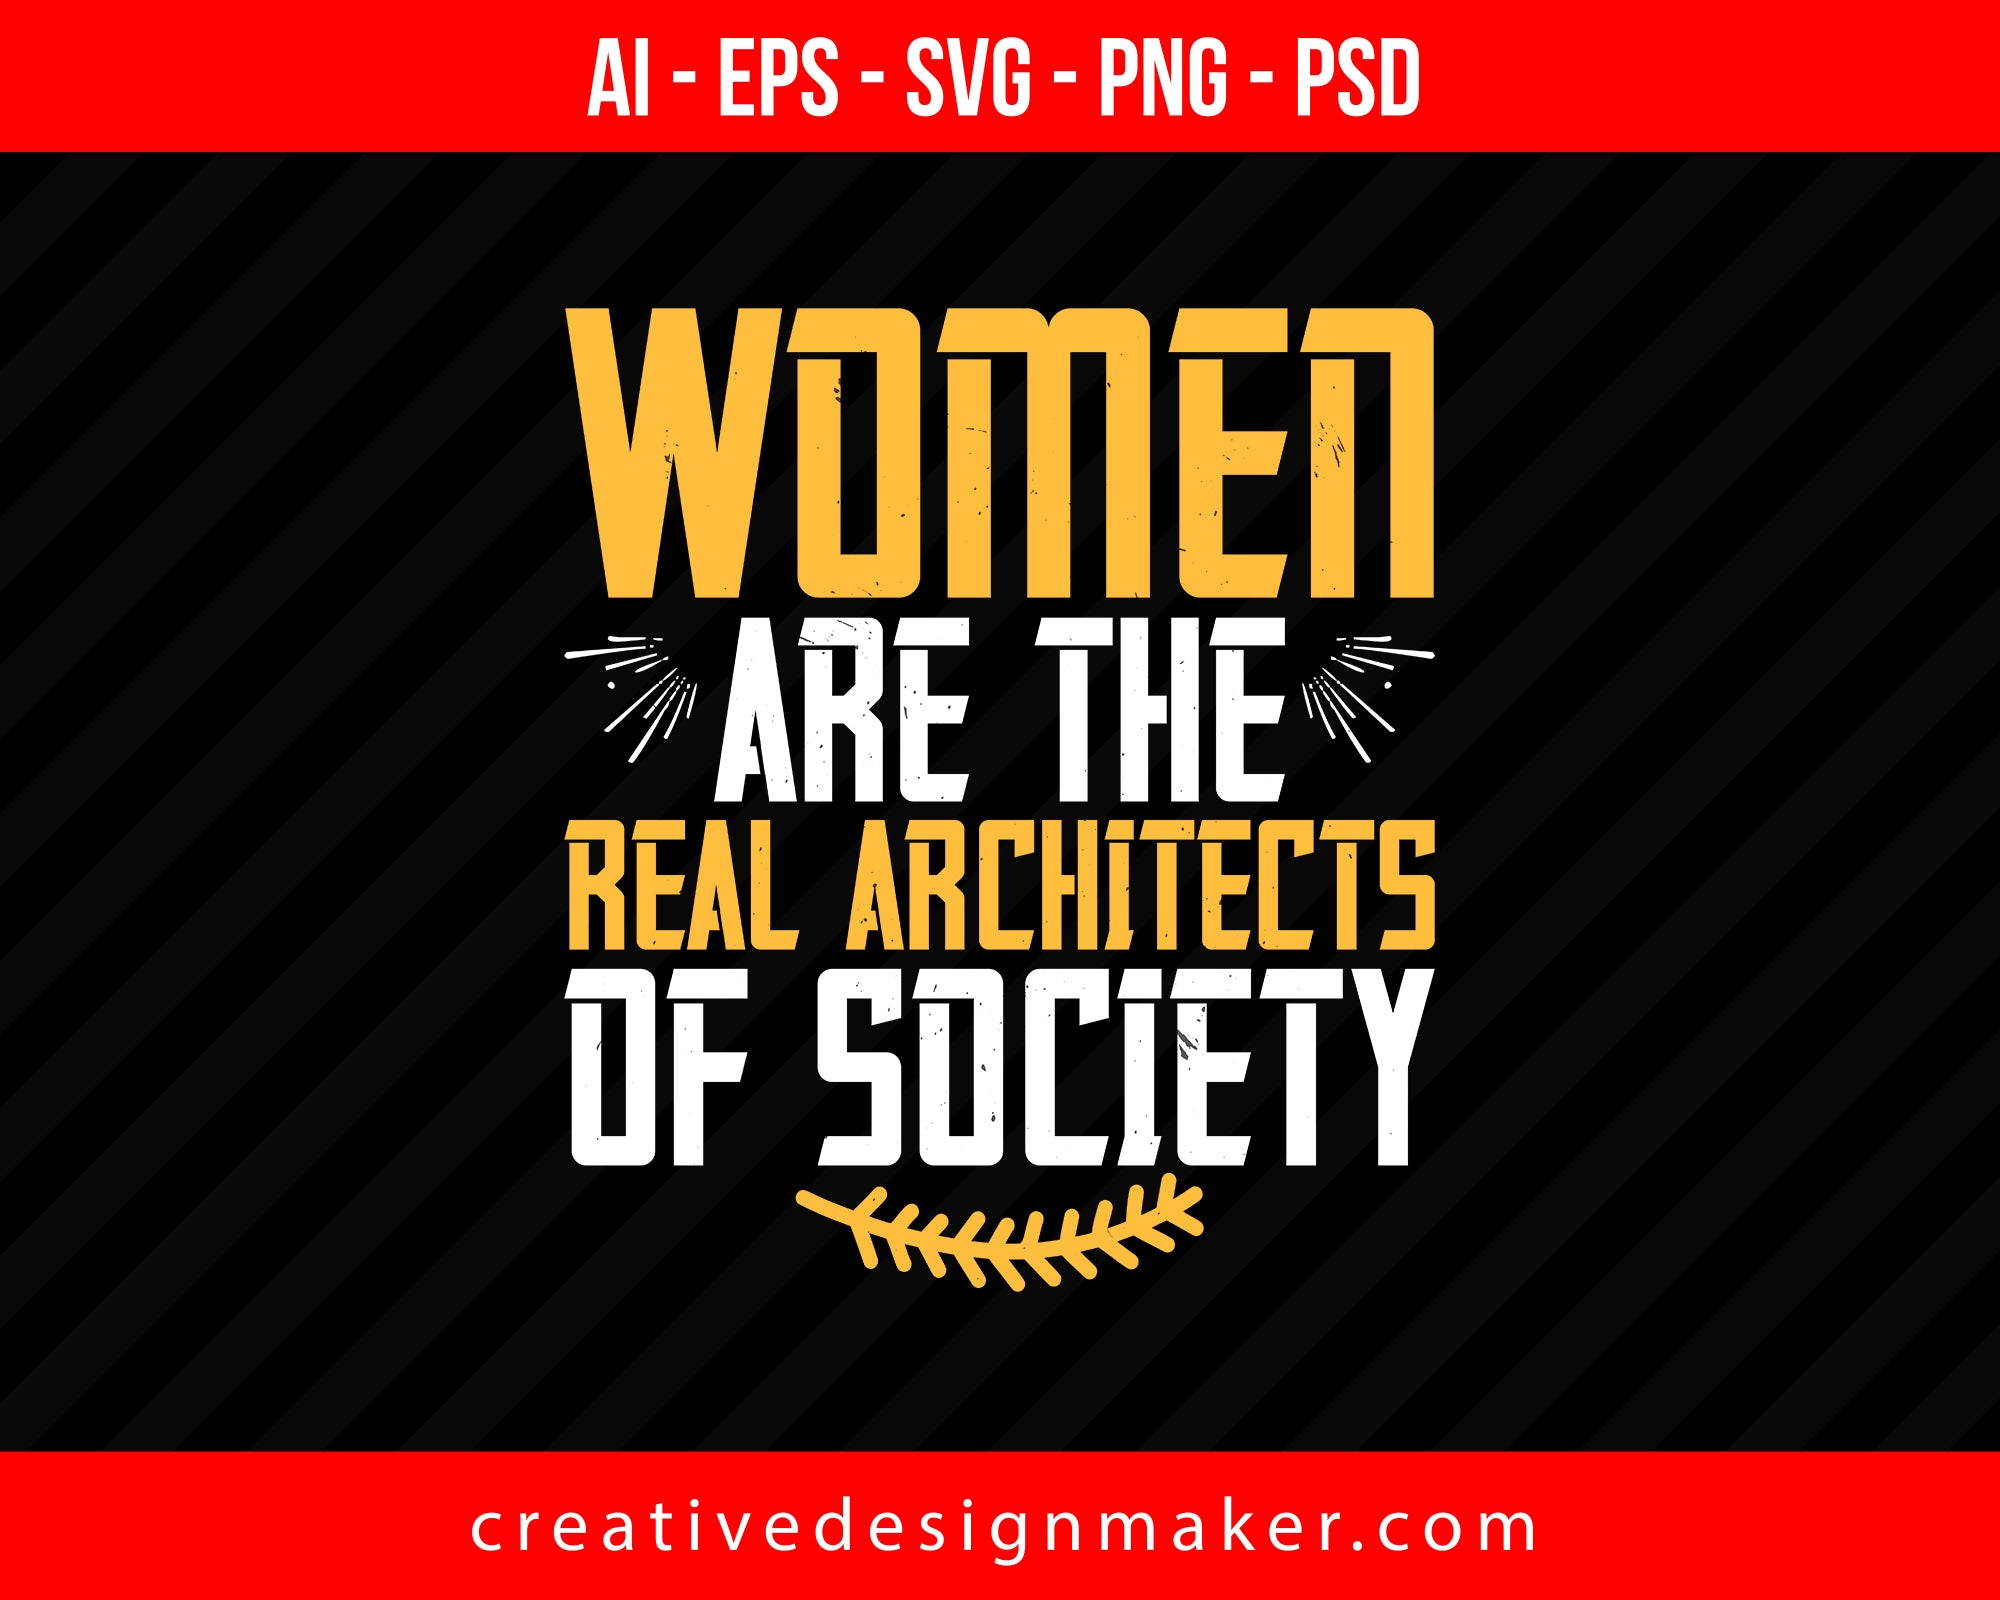 Women are the real architects of society Women's Day Print Ready Editable T-Shirt SVG Design!